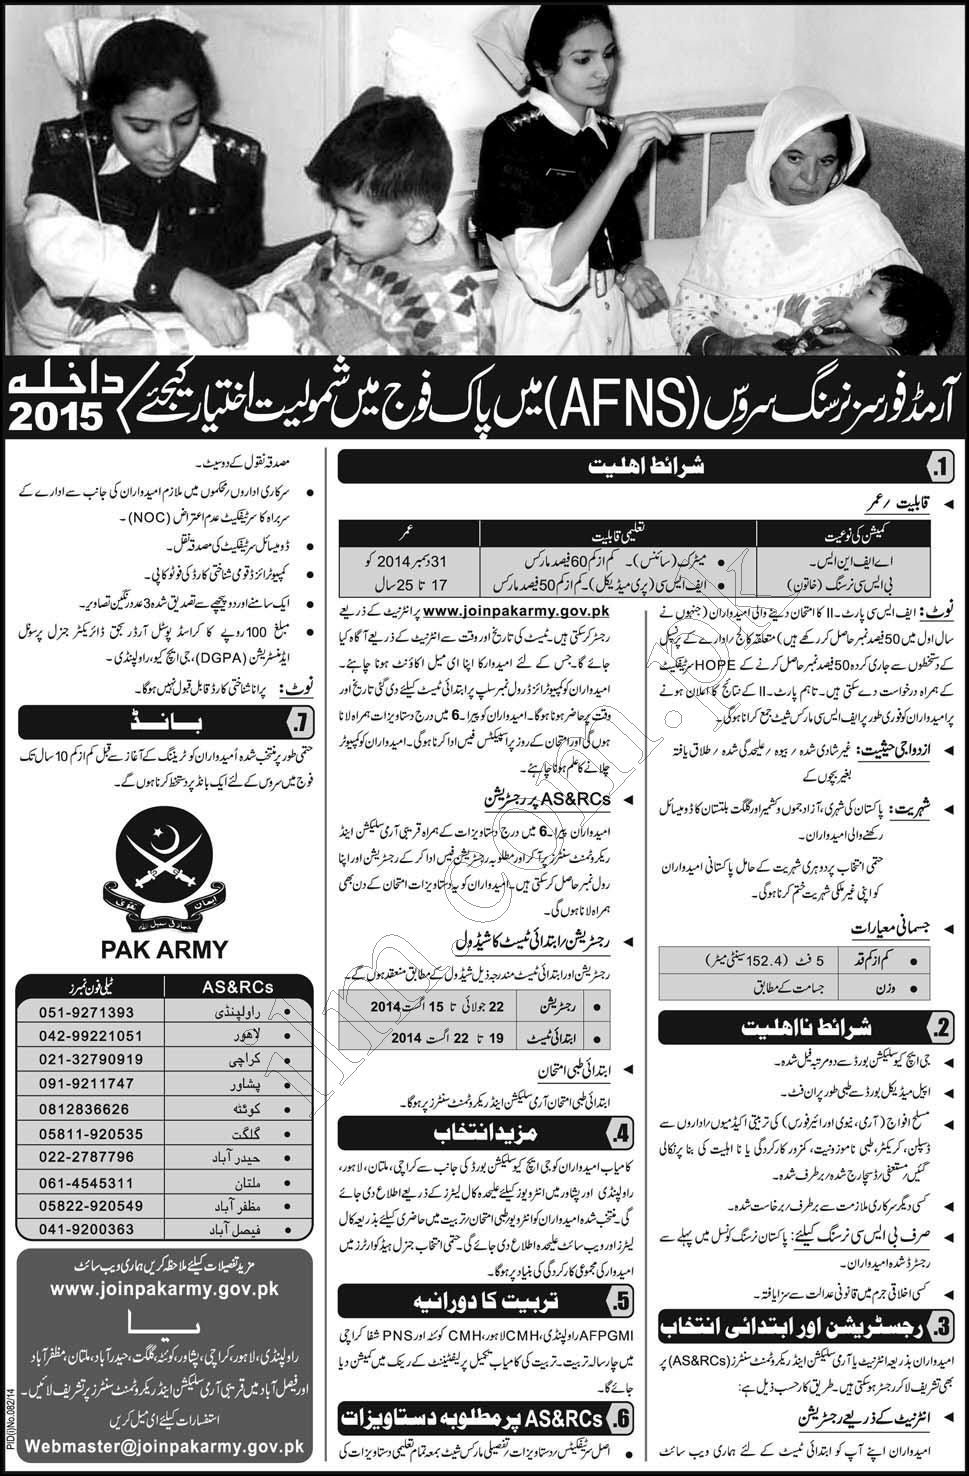 Join Pak Army As Armed Forces Nursing Services AFNS 2015 Eligibility